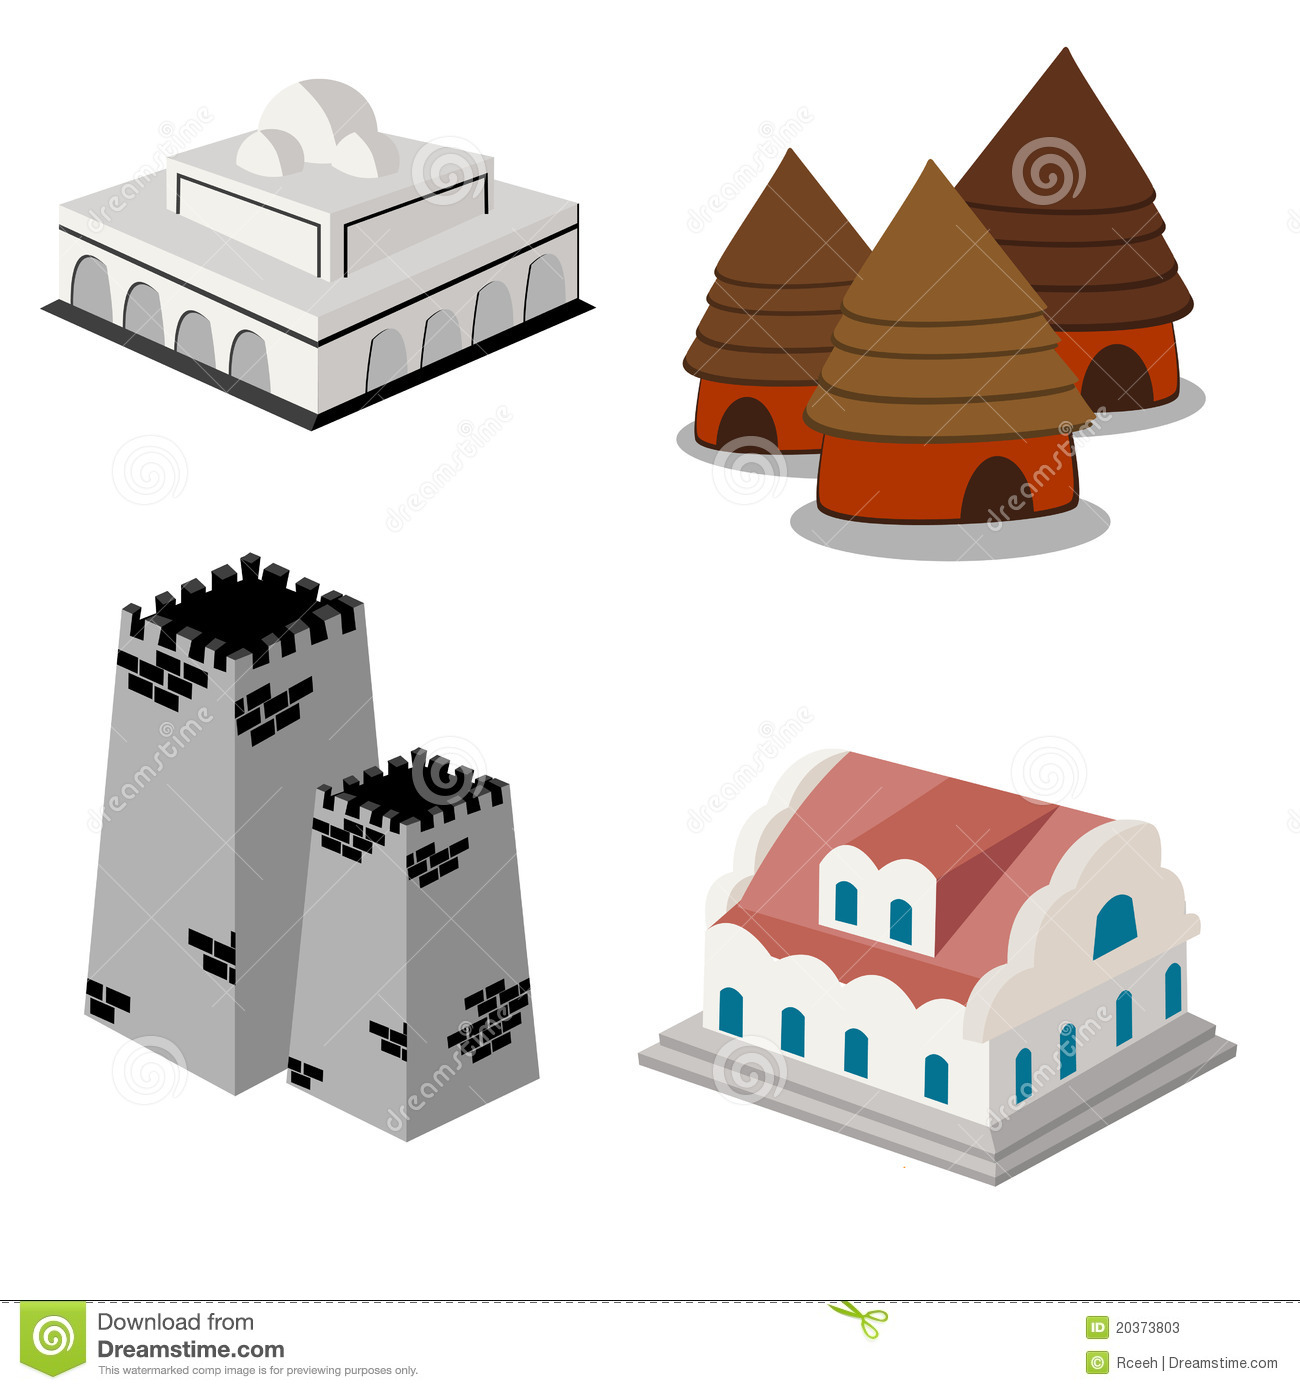 6 Isometric Building Icon Images